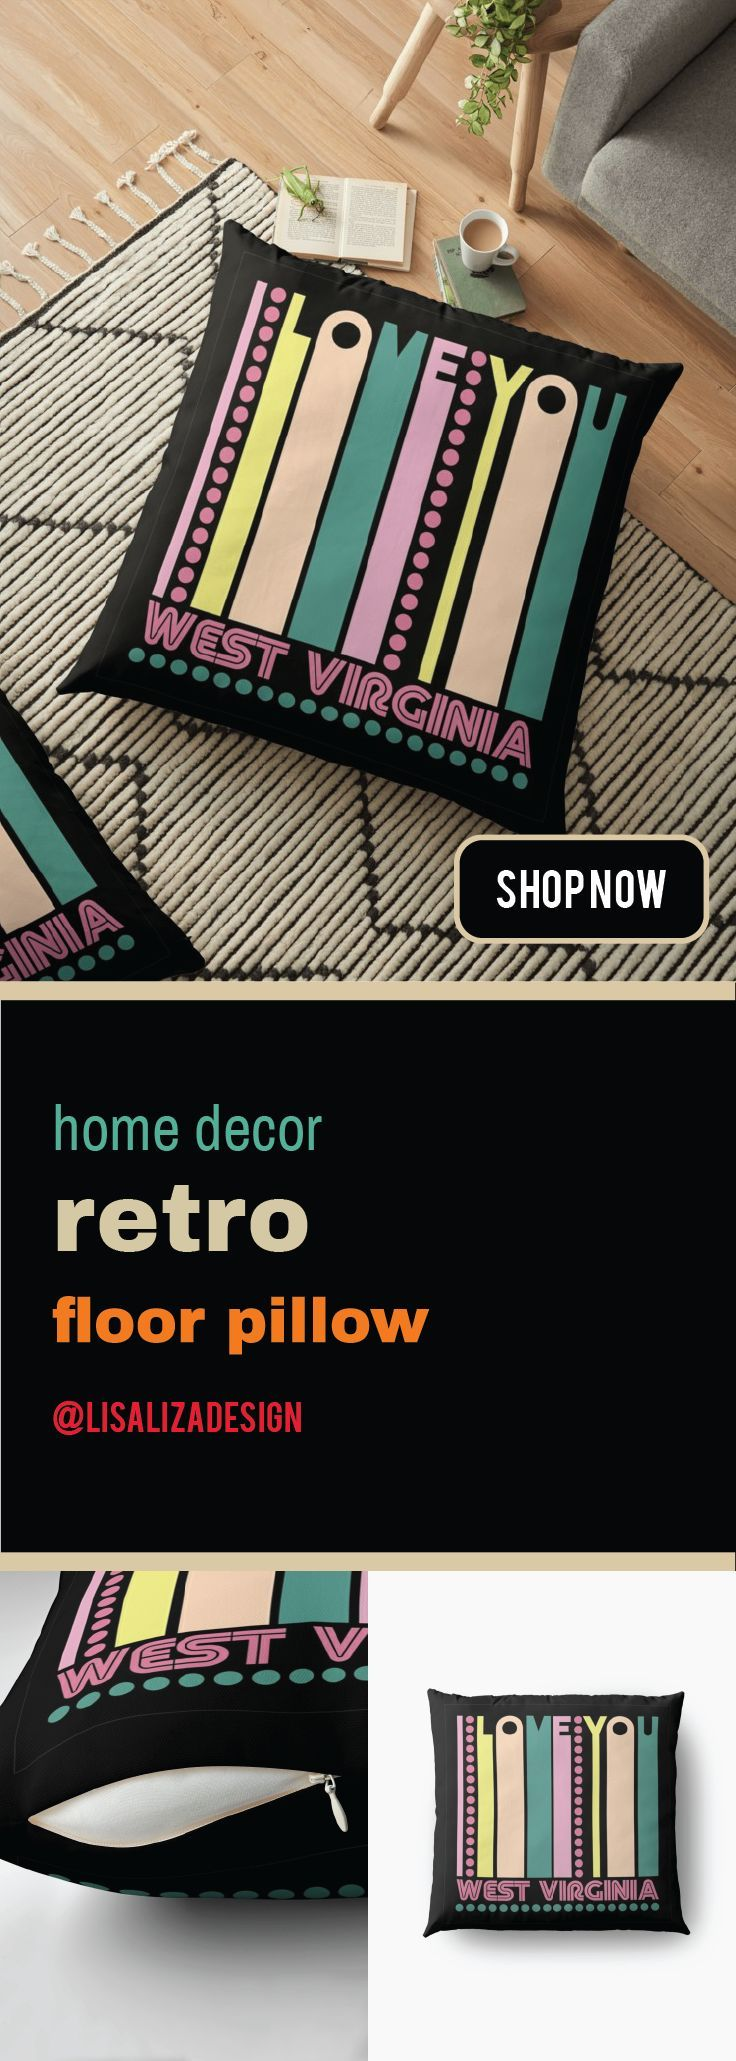 West Virginia I LOVE MY STATE Floor Pillows   This is a the perfect gift ideas for vintage or retro lover.   Receiver of this gift will be most delighted and appreciate your taste of choice.    #FloorPillow #Homedecor #Hugs #Gifts #Largepillow #FloorCushions #holidaygifts #presents #gifts #Retro #Vintage #Oldies #RetroHomeDecor #VintageHomeDecor #Redbubble #Lisaliza #giftideas